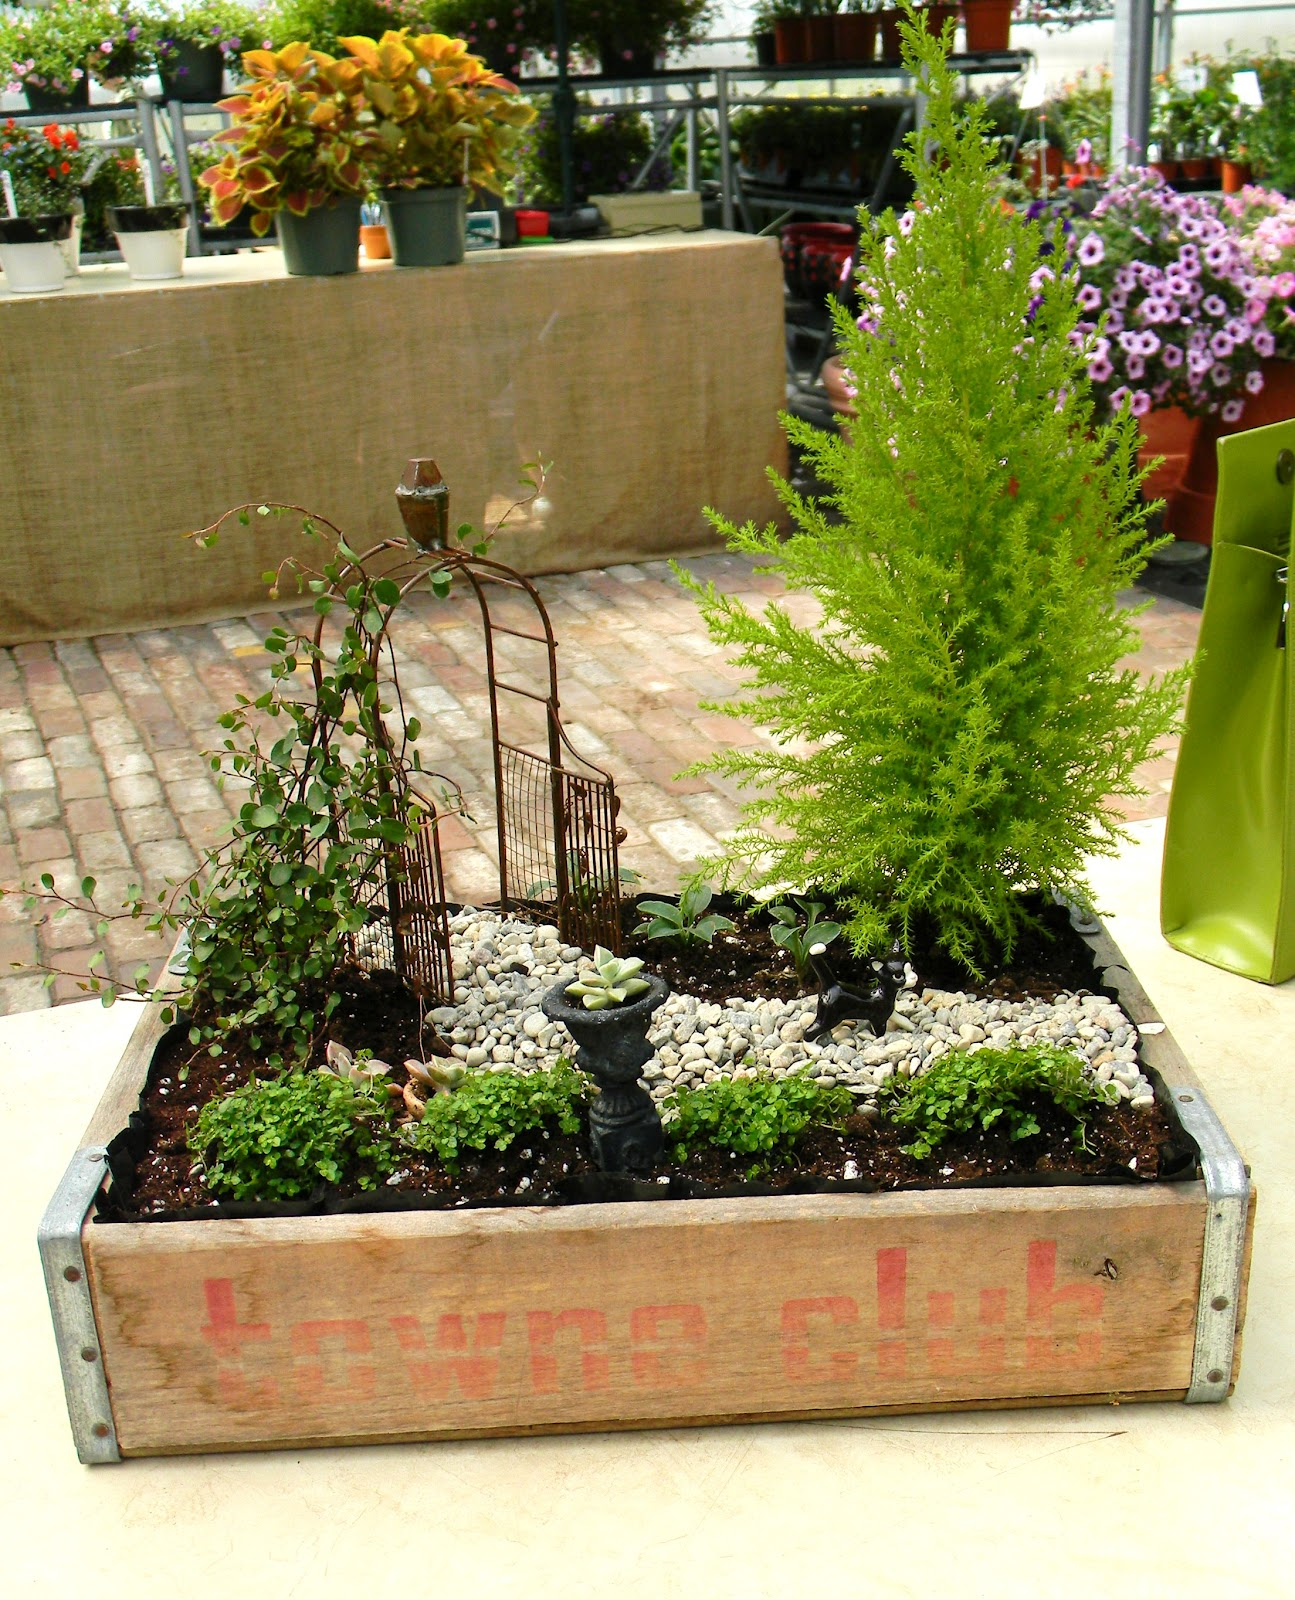 Edible Landscaping And Fairy Gardens: Everlasting Blooms: Fairy Garden Inspiration